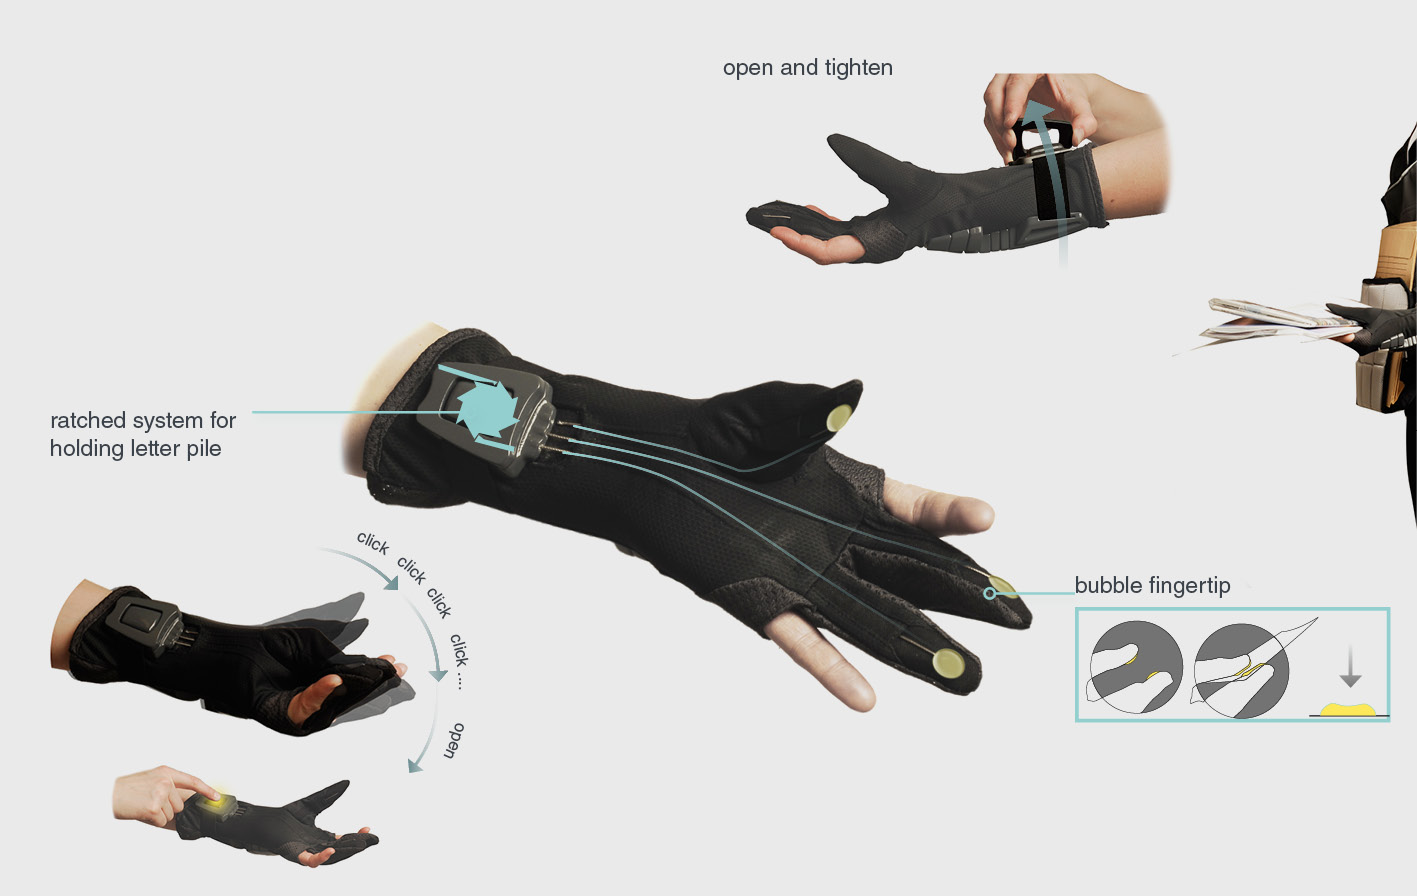 The ratchet system is placed on the underside of the hand. It works through 3 wires connected from the ratchet to the fingers